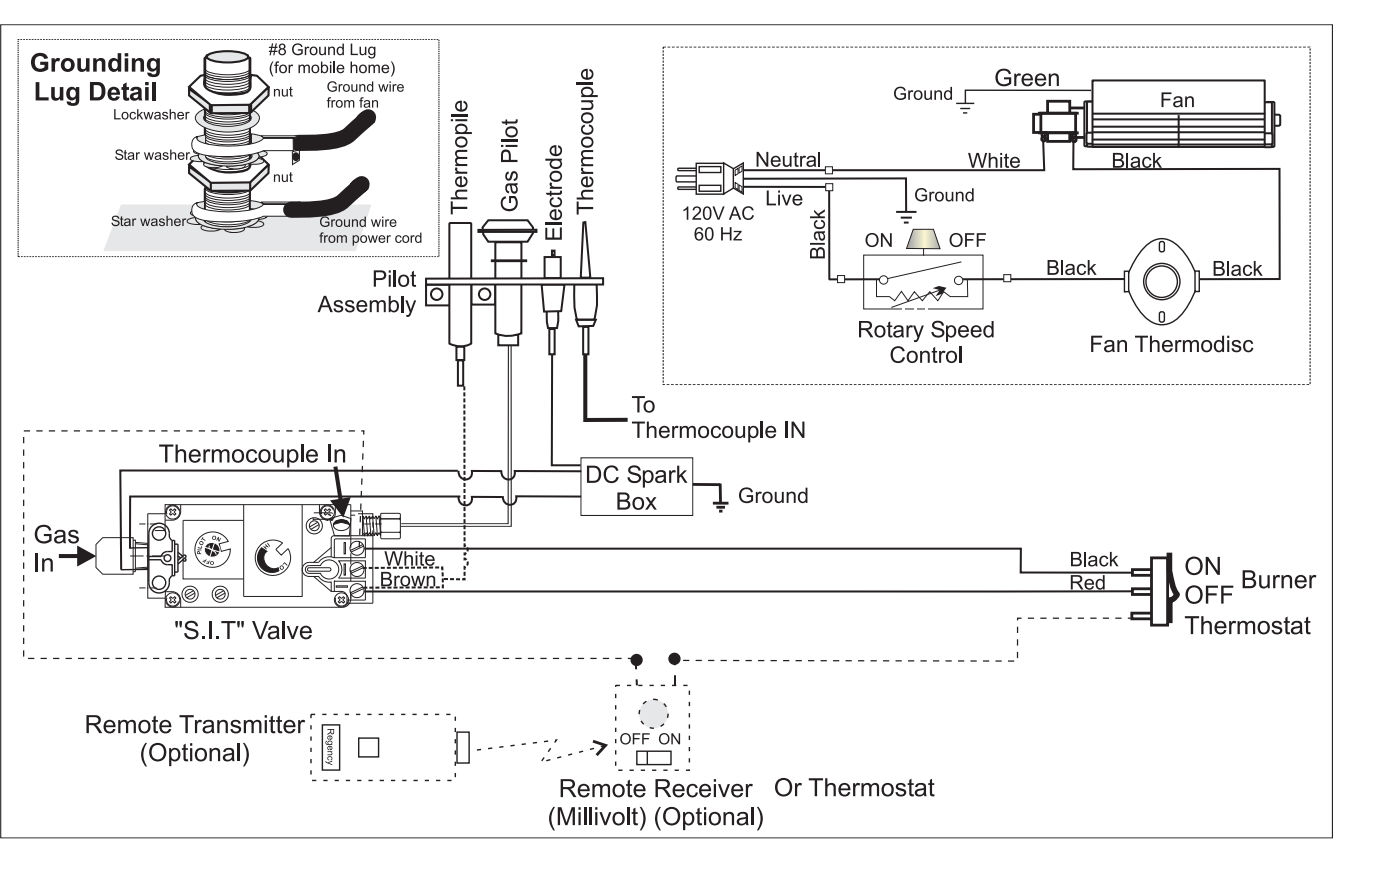 Ruud Heat Pump Wiring Schematic